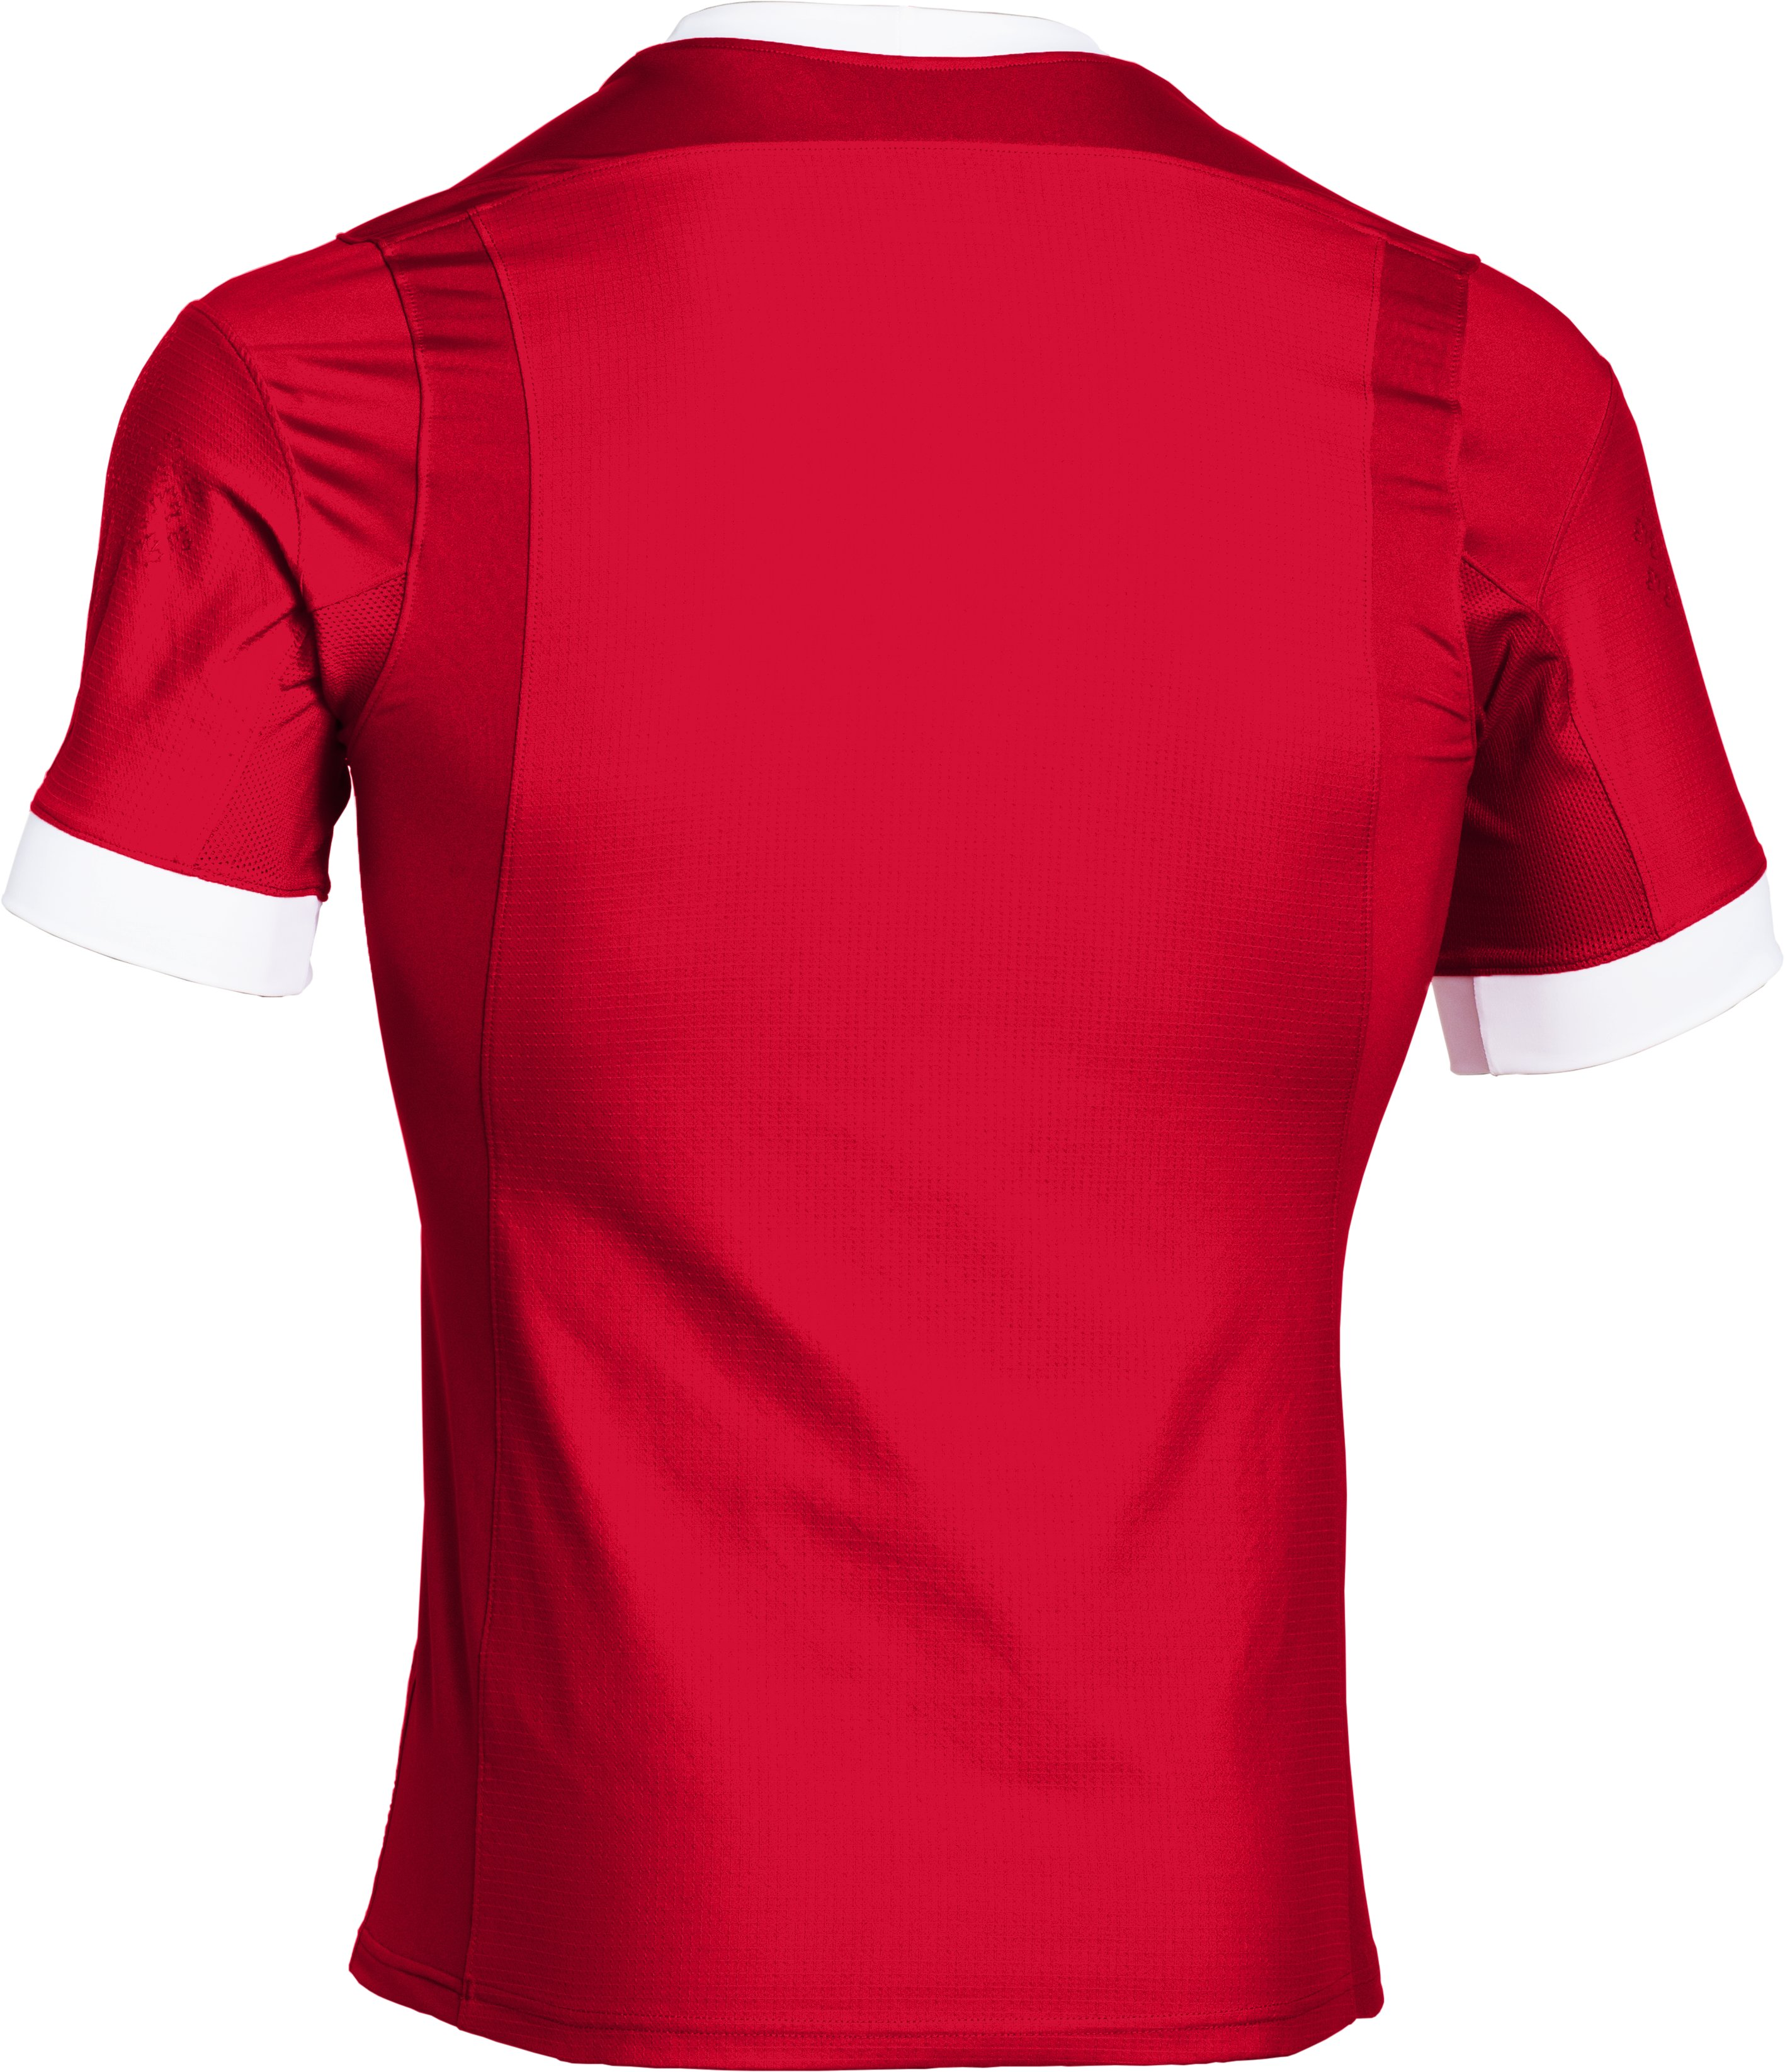 Men's Rugby Canada Game Day Jersey, Red, undefined